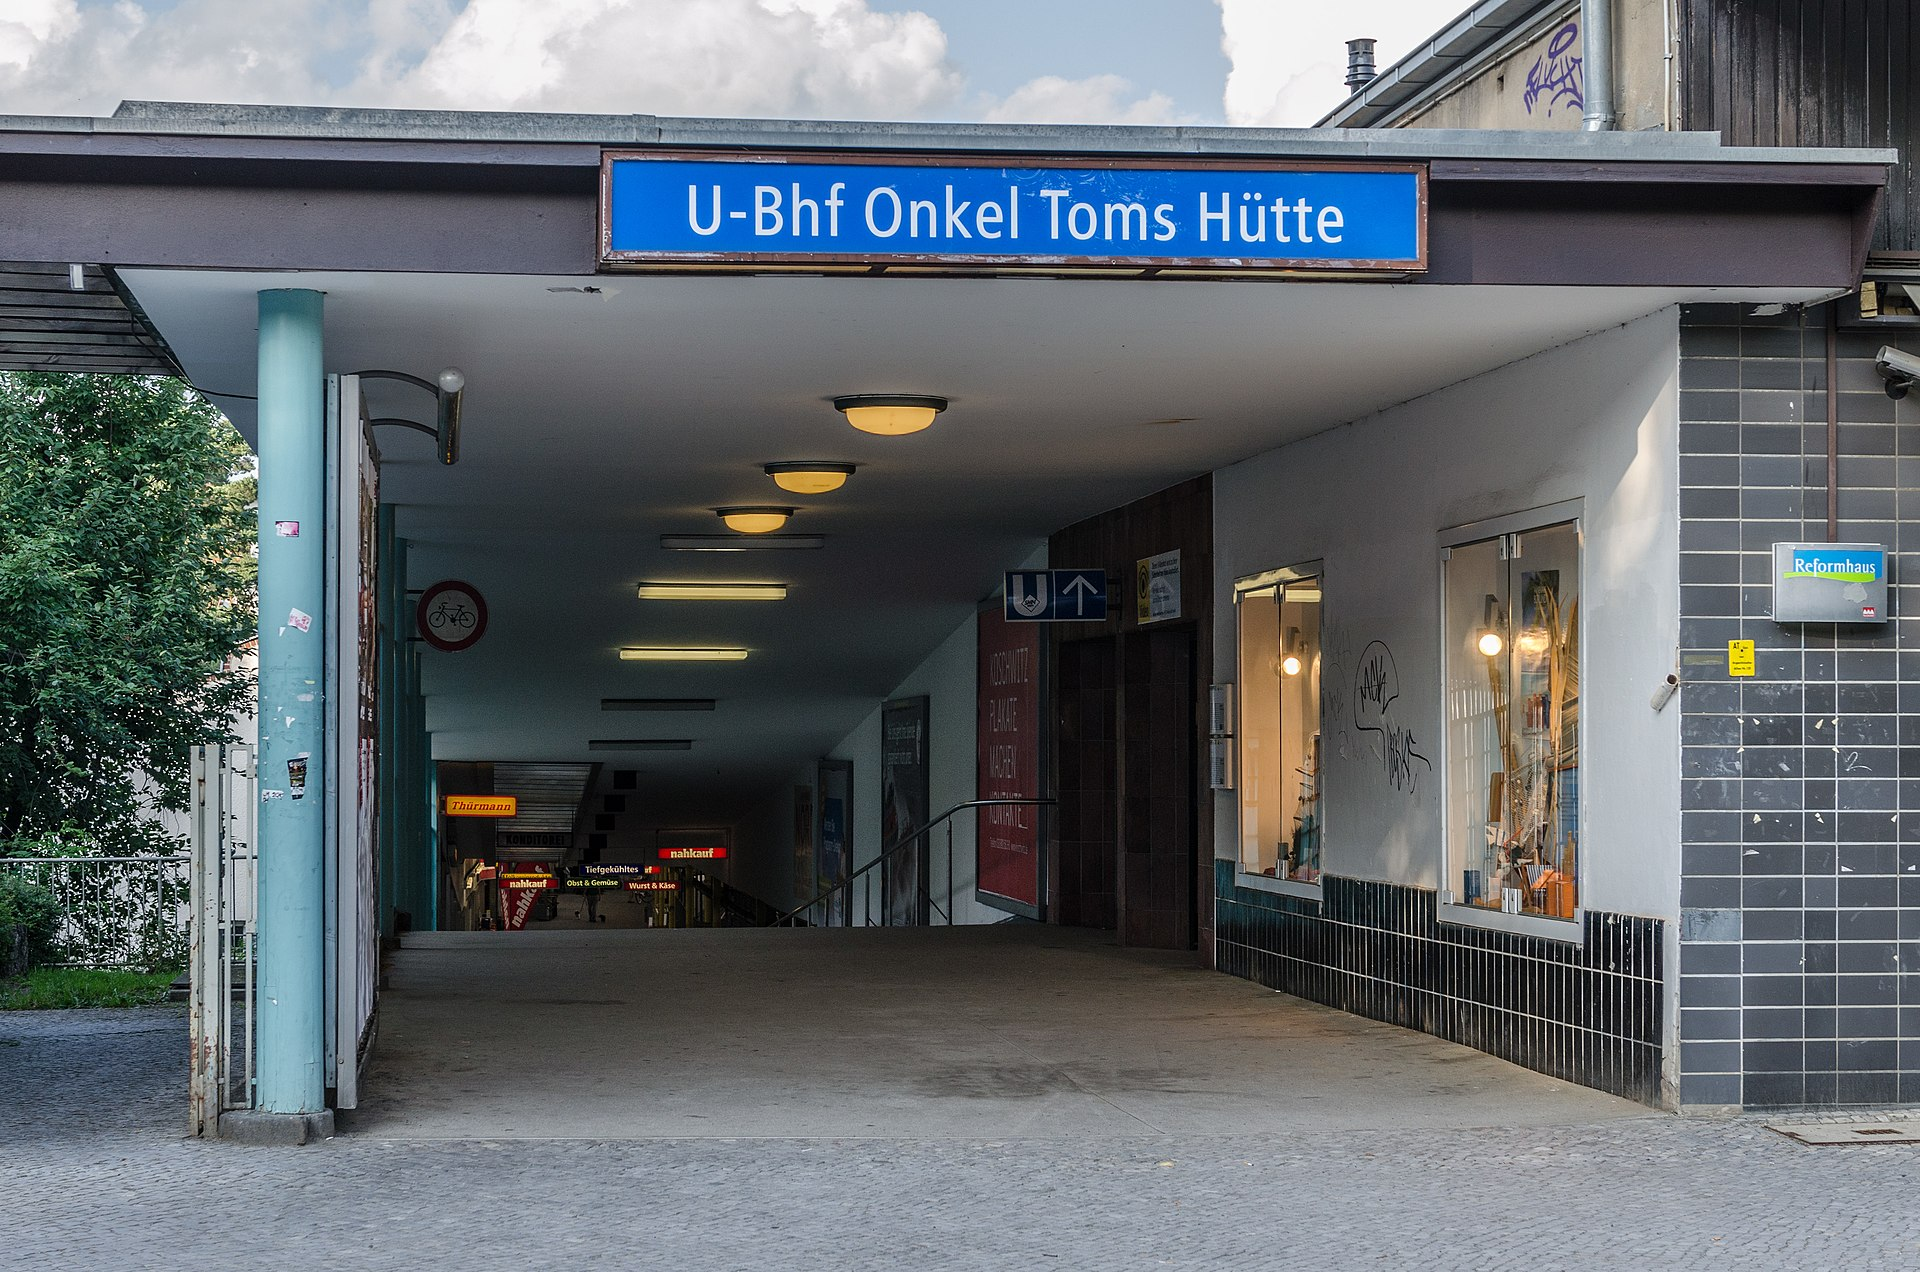 1920px-U-Bahnhof_Onkel-Toms-H%C3%BCtte%2C_Left_Entry_at_Onkel-Tom-Strasse_20130705_2.jpg